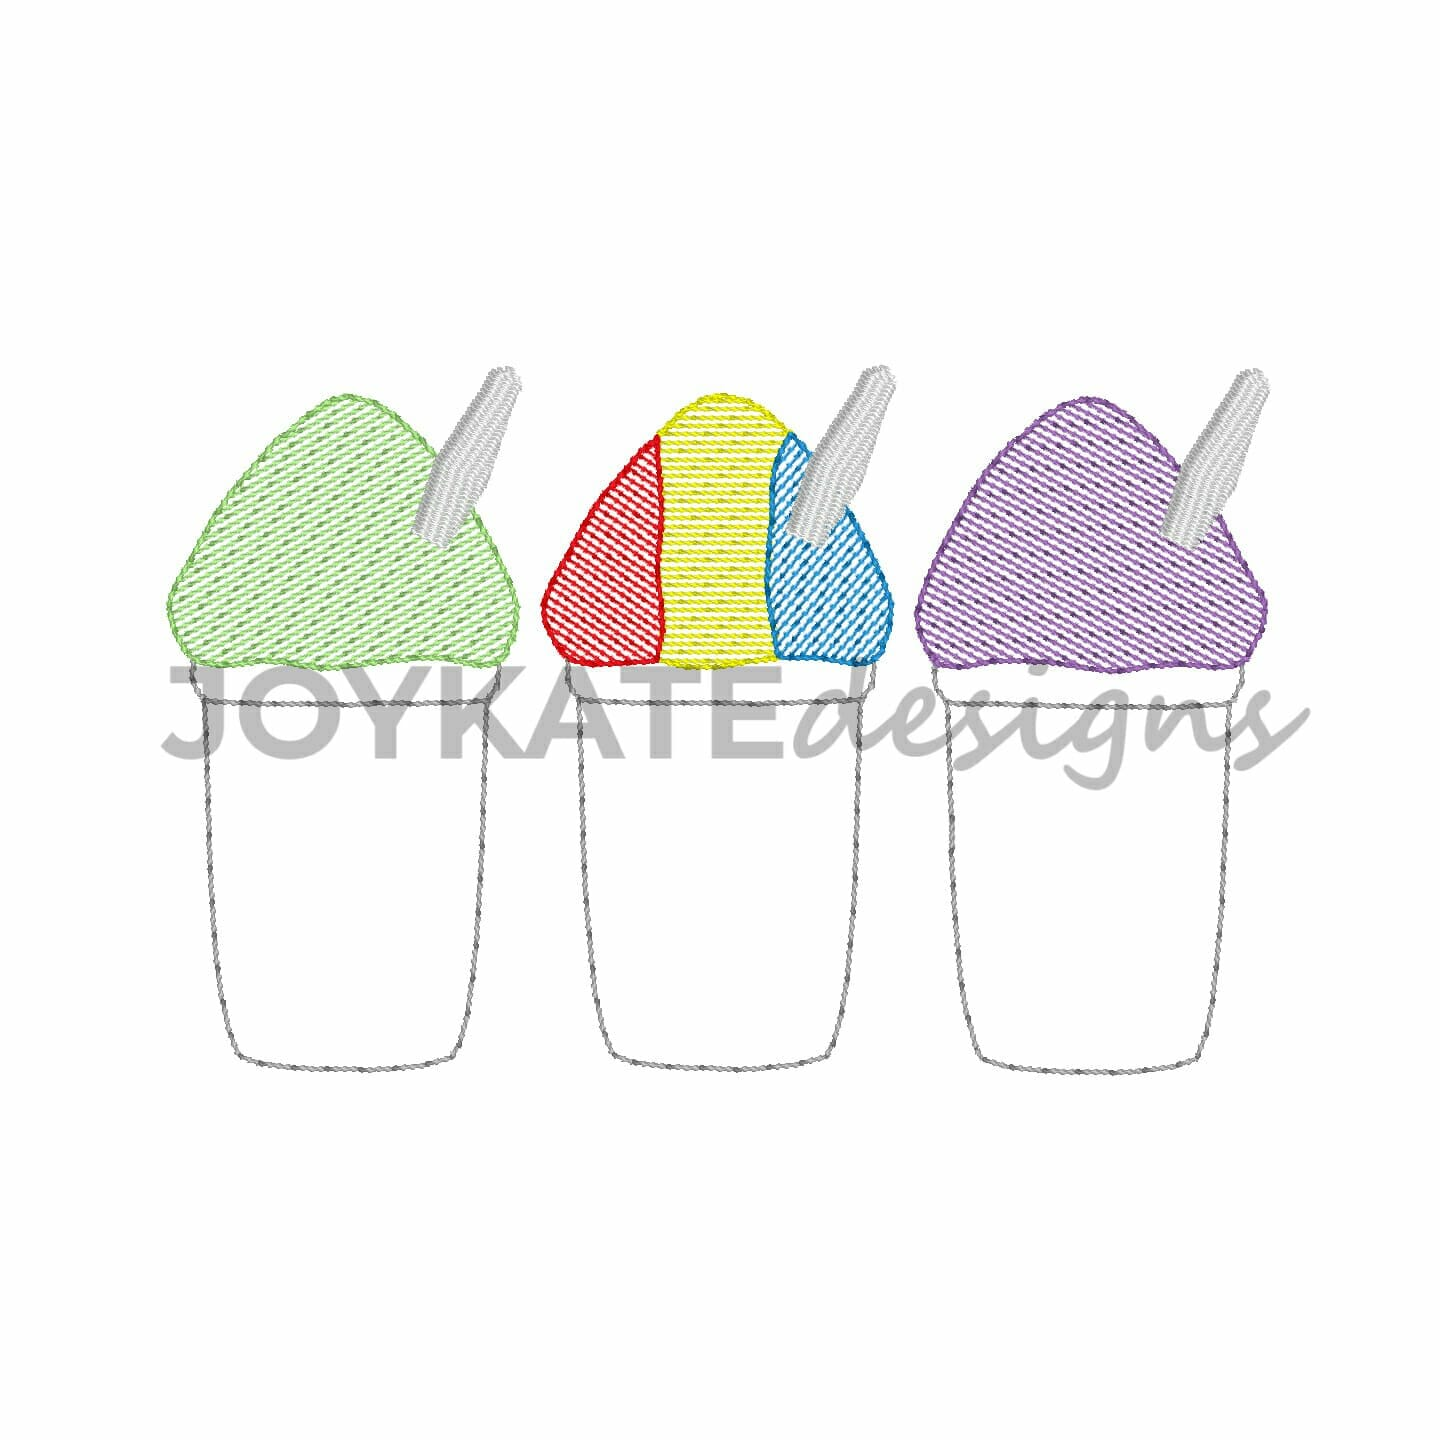 Sno Ball Trio Vintage Stitch Embroidery Design Joy Kate